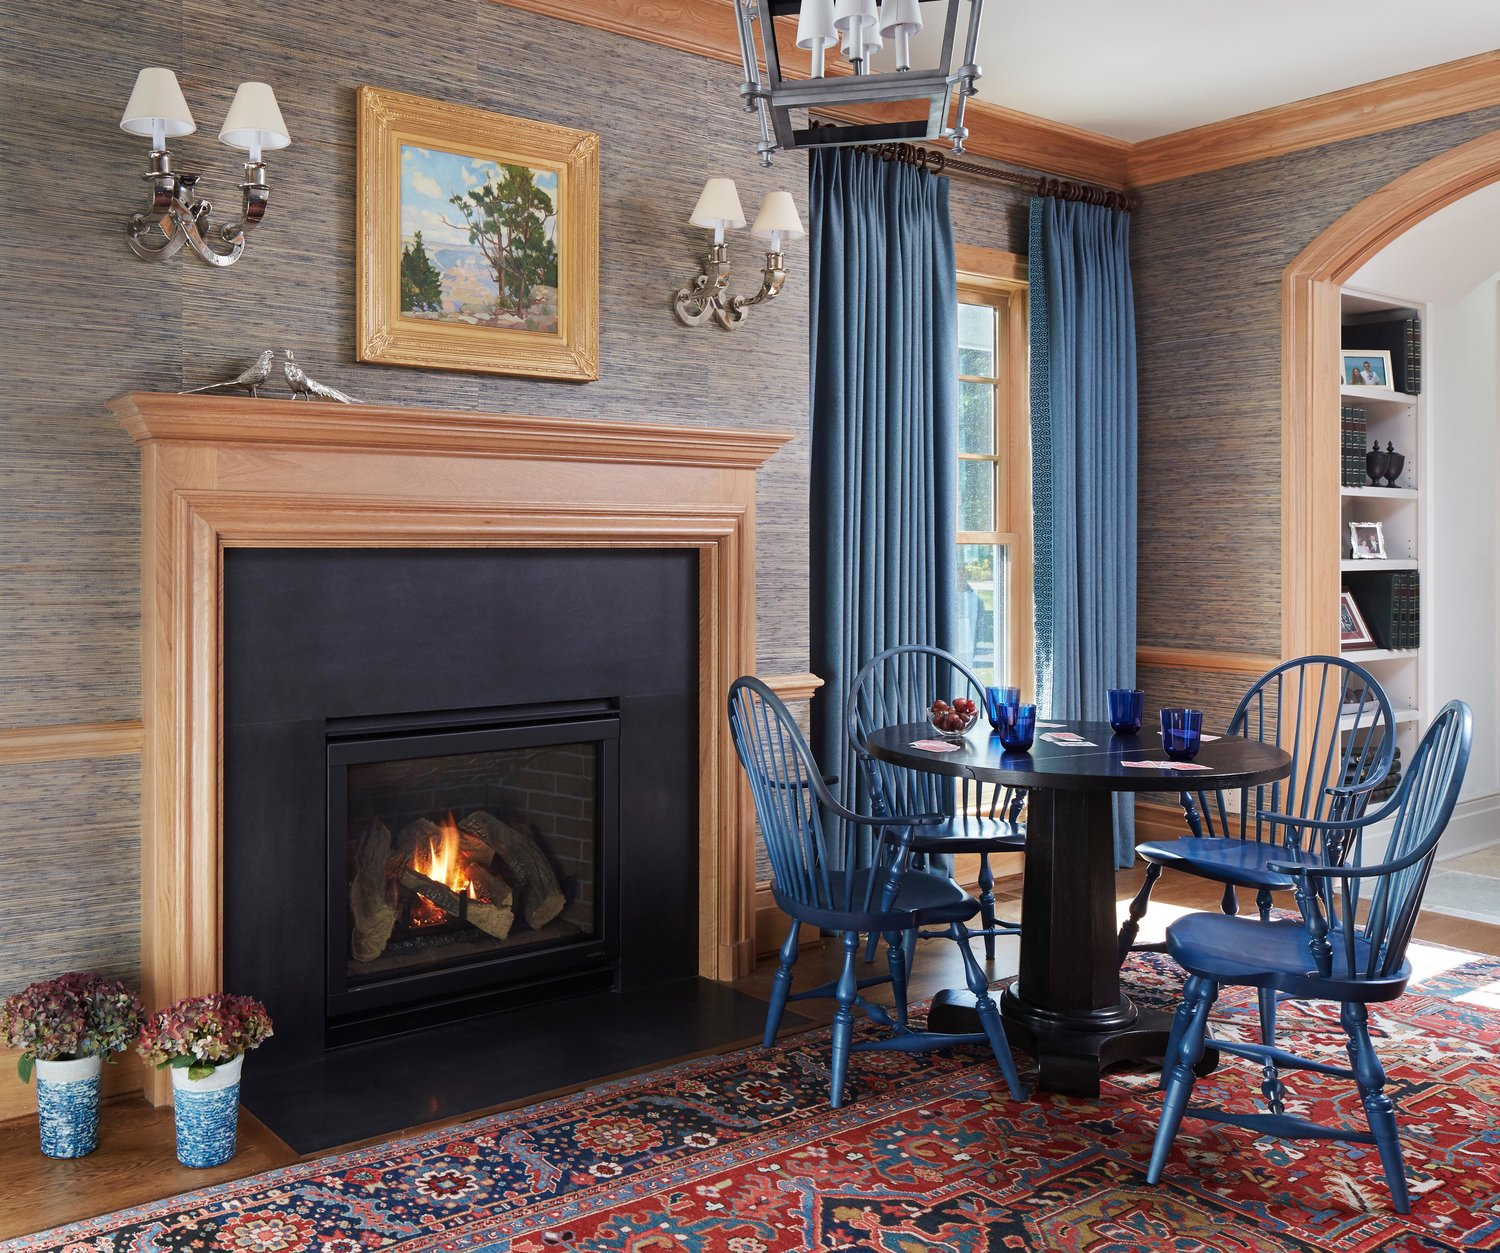 Blue windsor chairs near a cozy fireplace in a family room with grasscloth wall covering. Come see more interior design inspiration from Elizabeth Drake. Photo by Werner Straube. #interiordesign #classicdesign #traditionaldecor #housetour #elizabethdrake